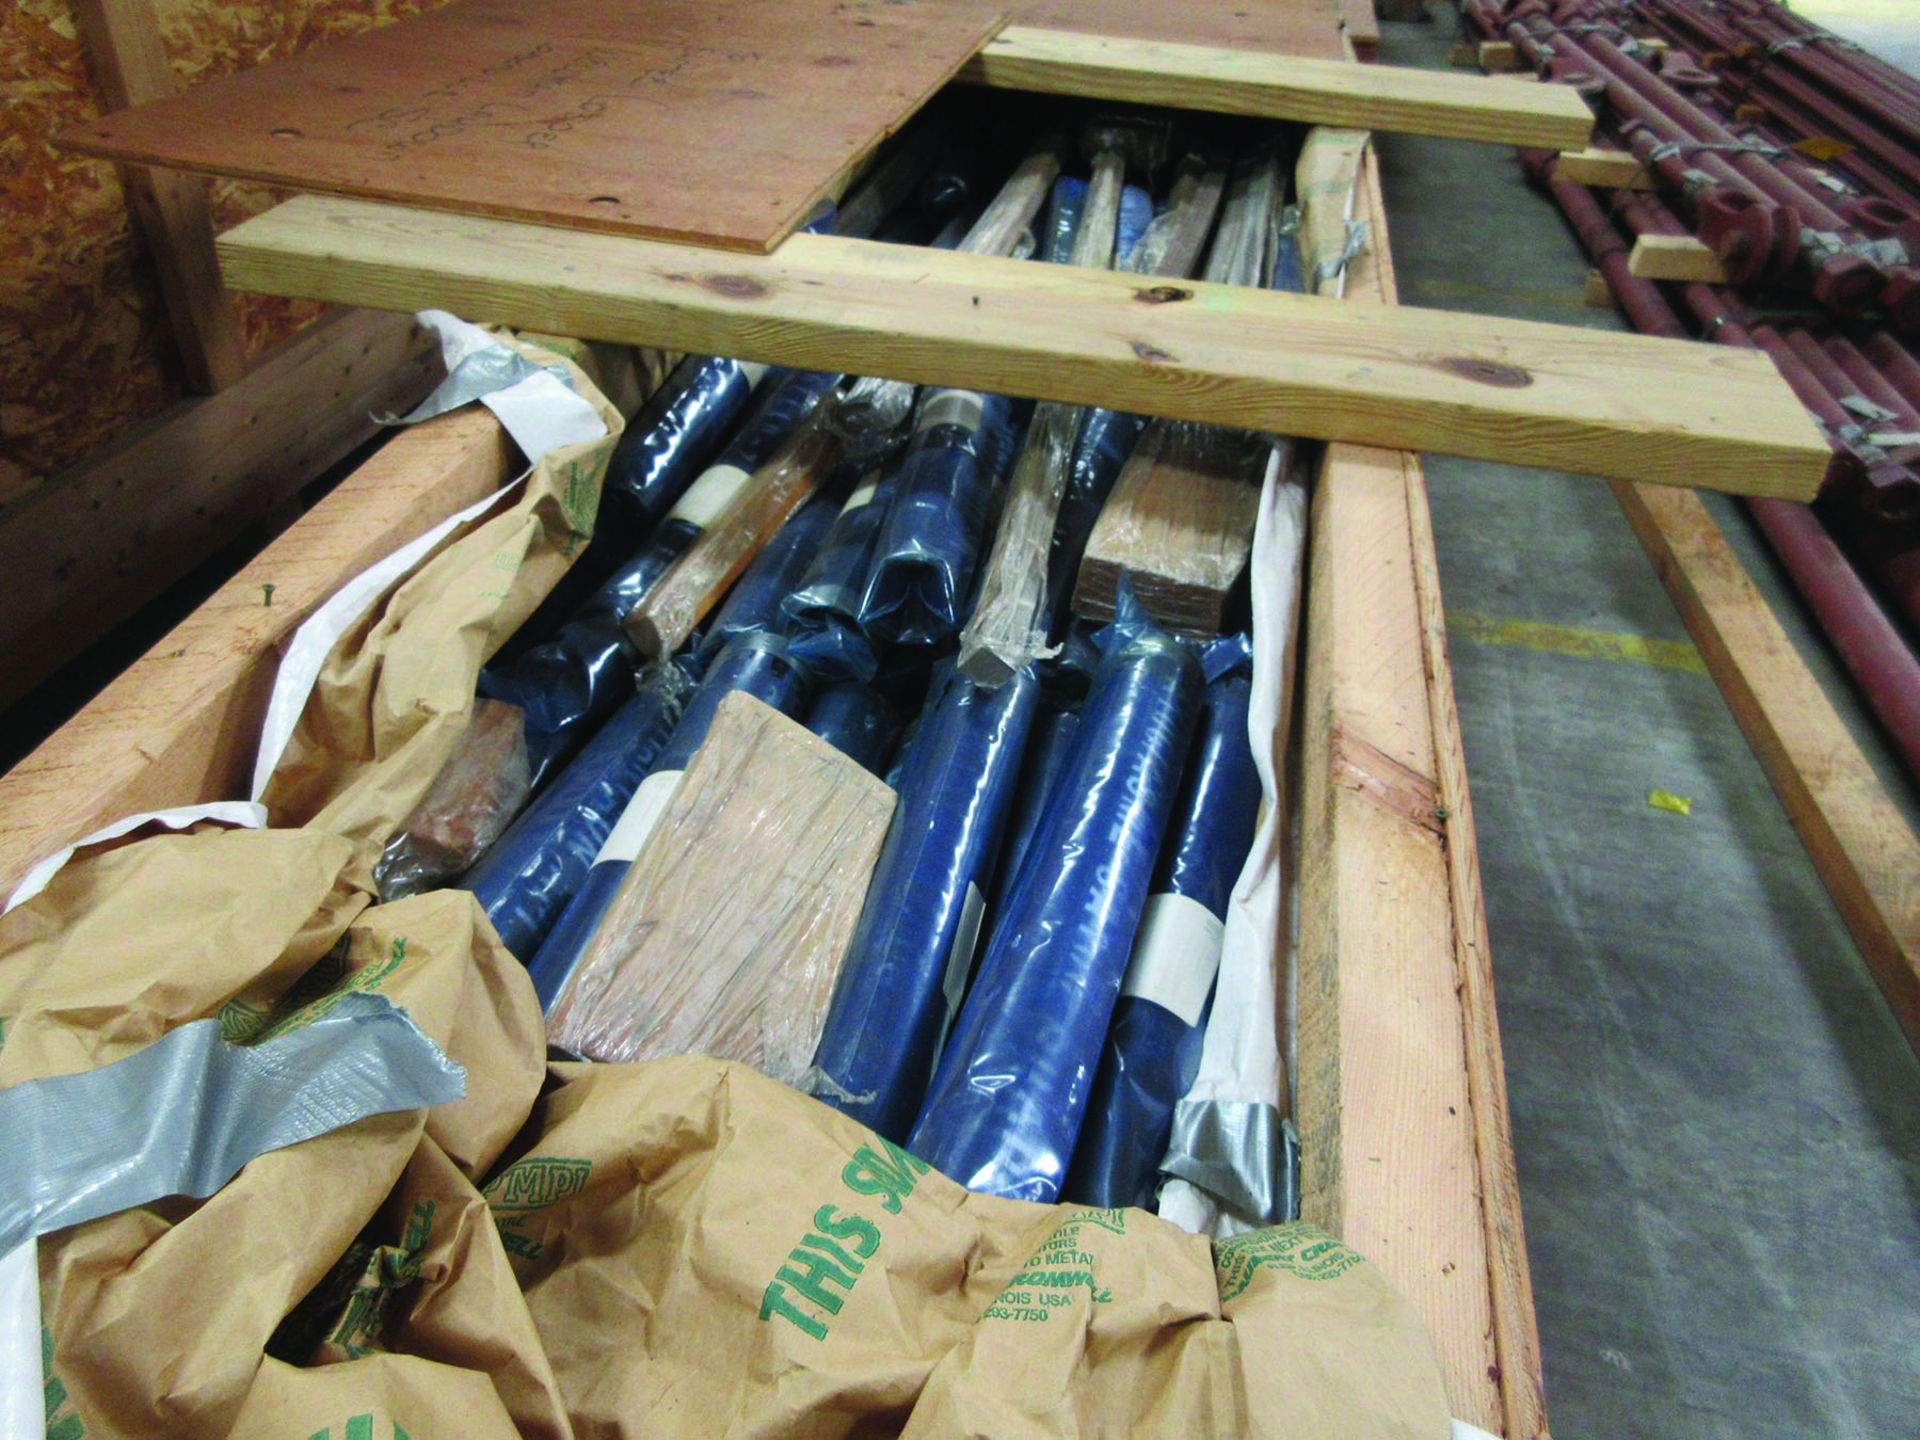 STRUCTURAL STEEL: RODS, PIPE, BRACKETS, FLANGES, GRID D7 - Image 8 of 14